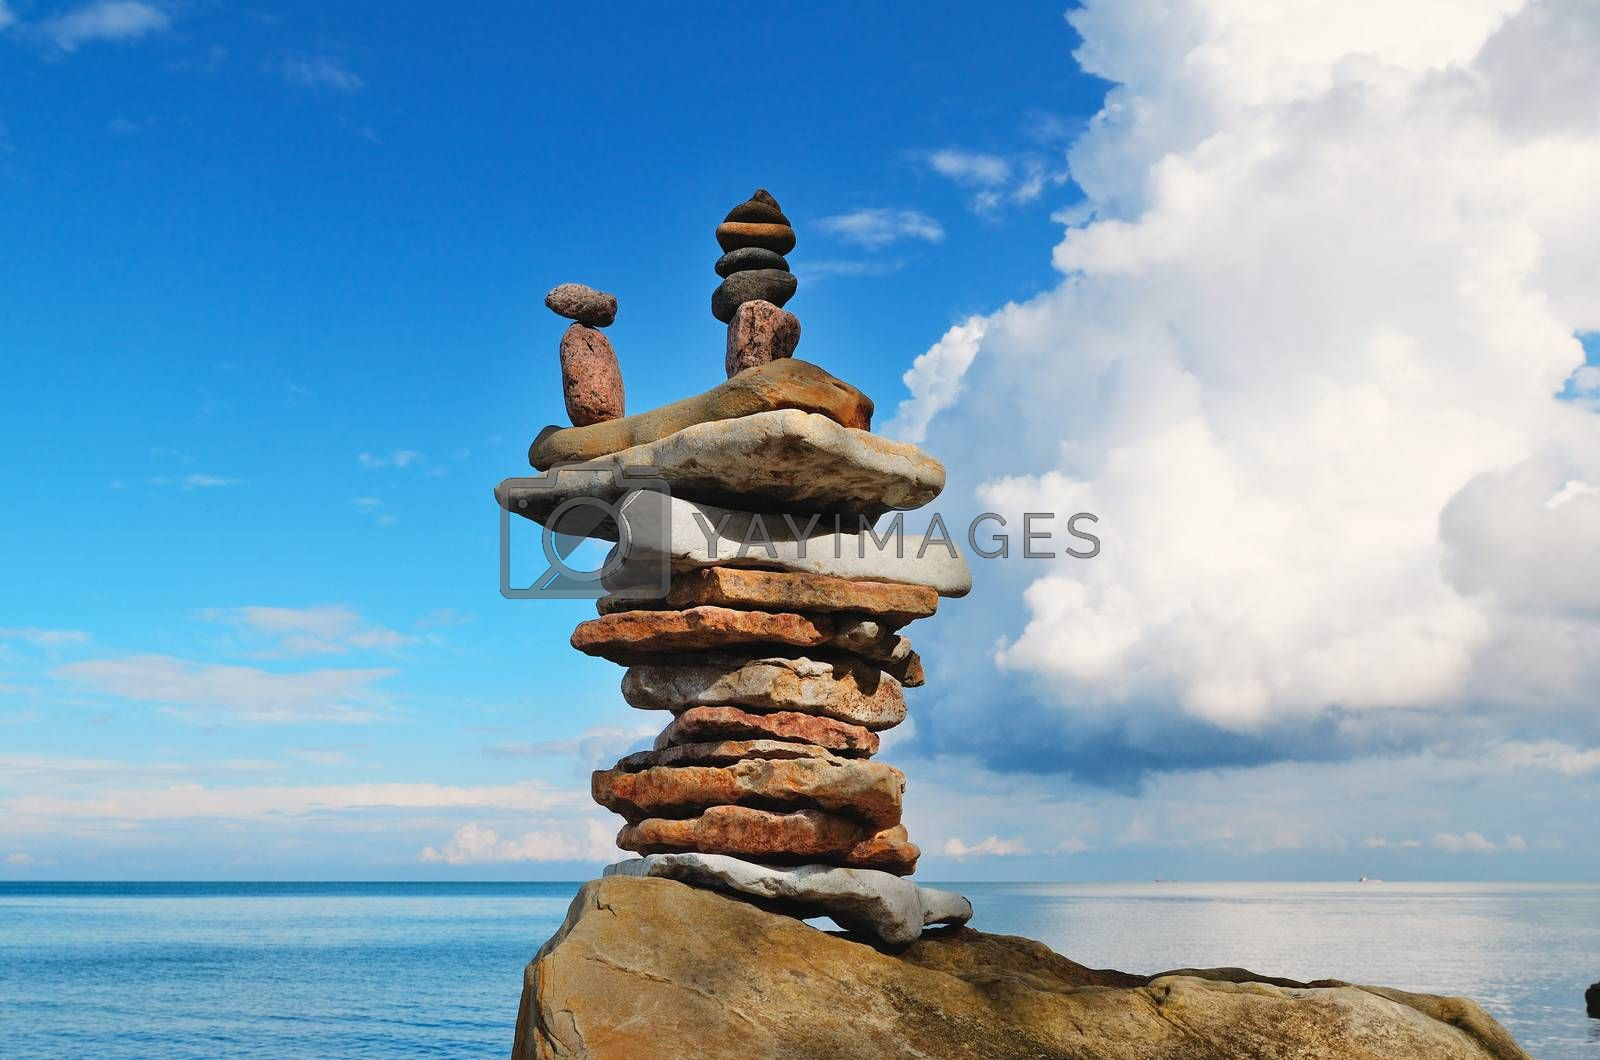 Pyramidal stack of pebbles on the coast